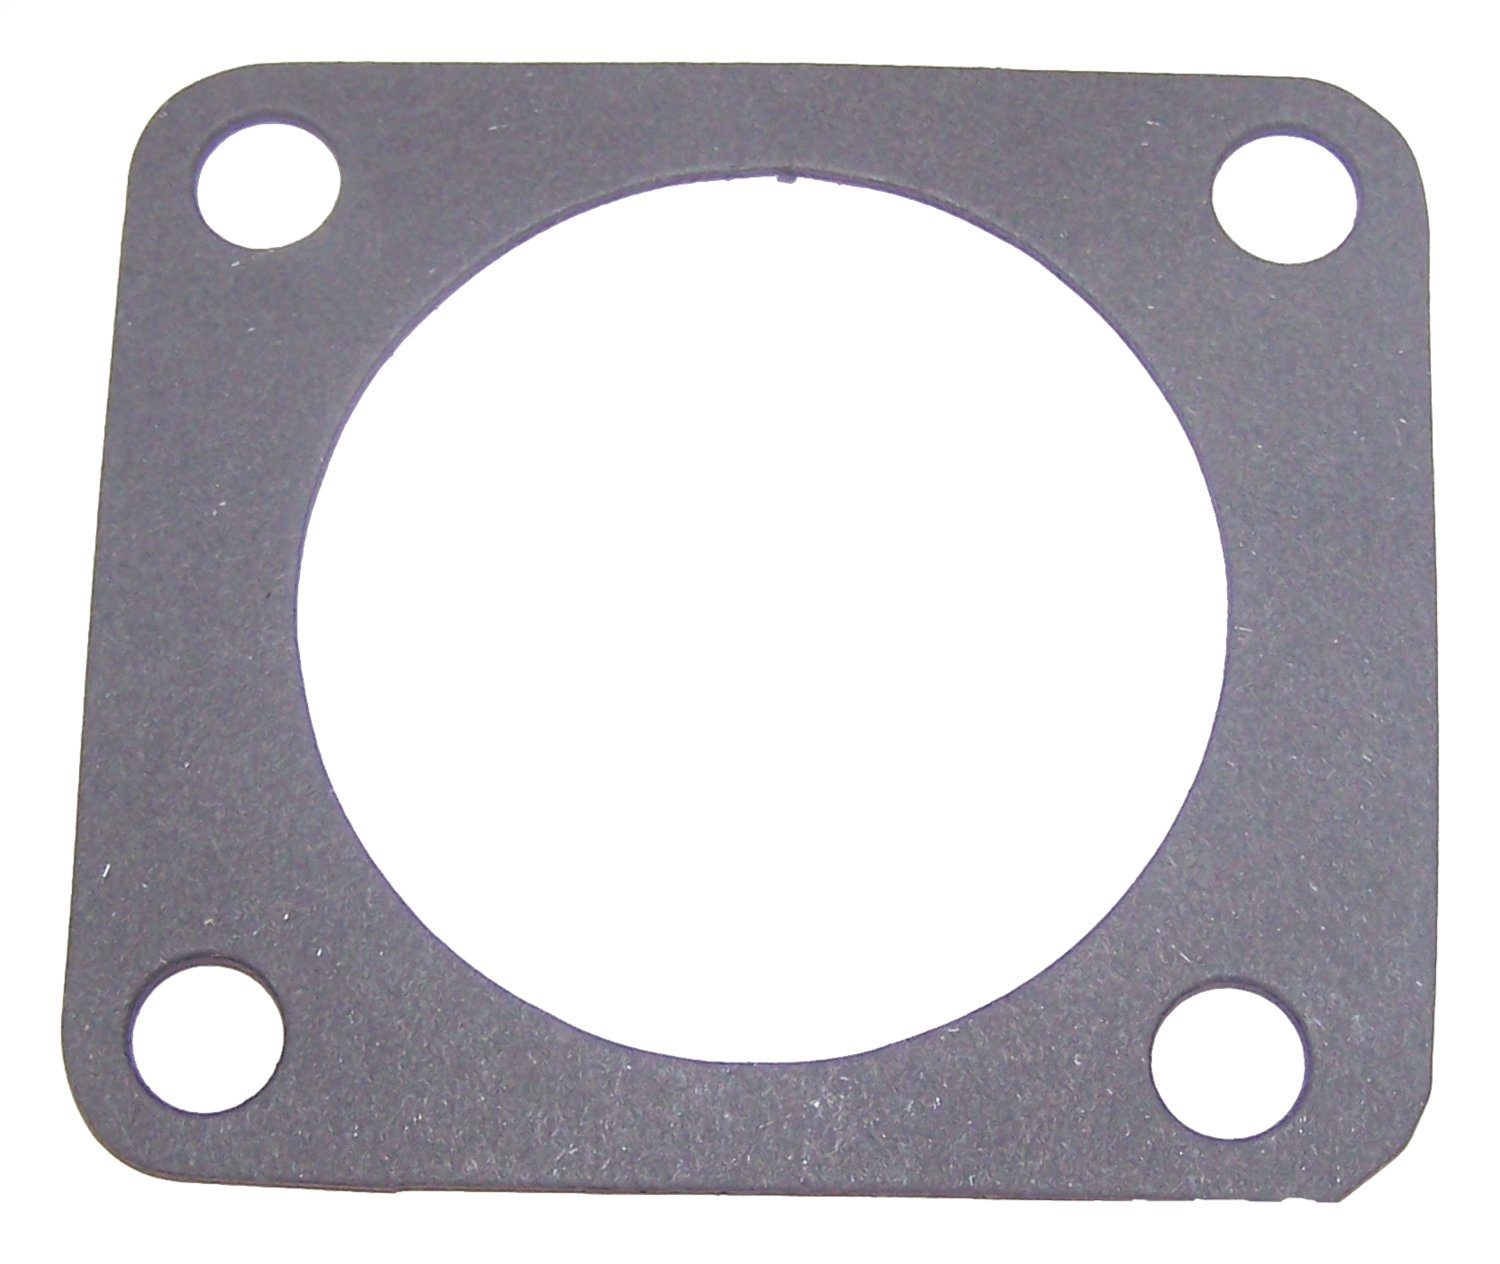 Crown Automotive 52017817 Exhaust Flange Gasket